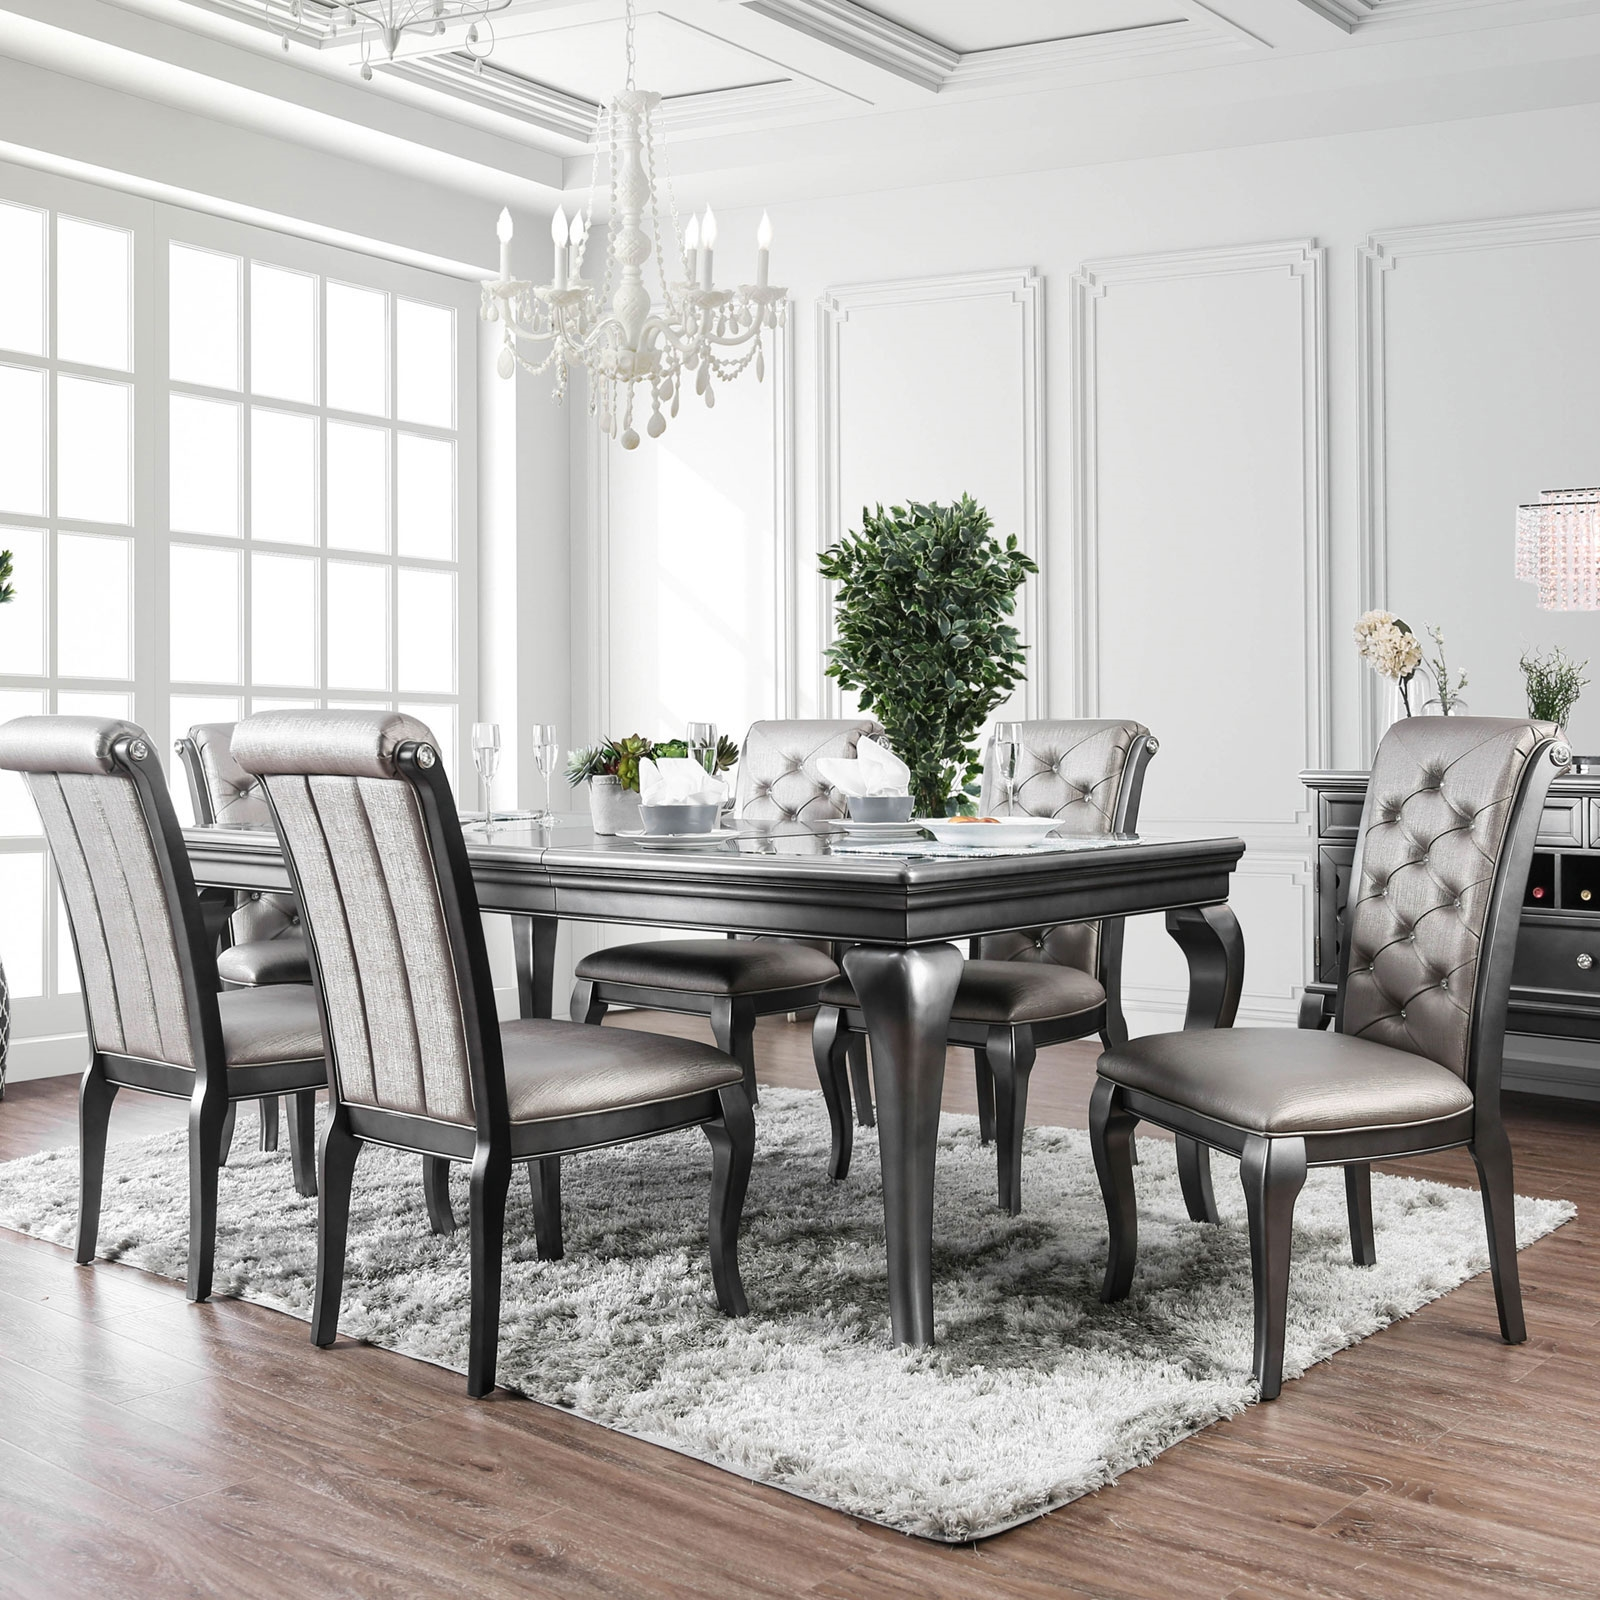 Transitional Glam Style Formal Dining Set, 7 Piece Dining Room Set